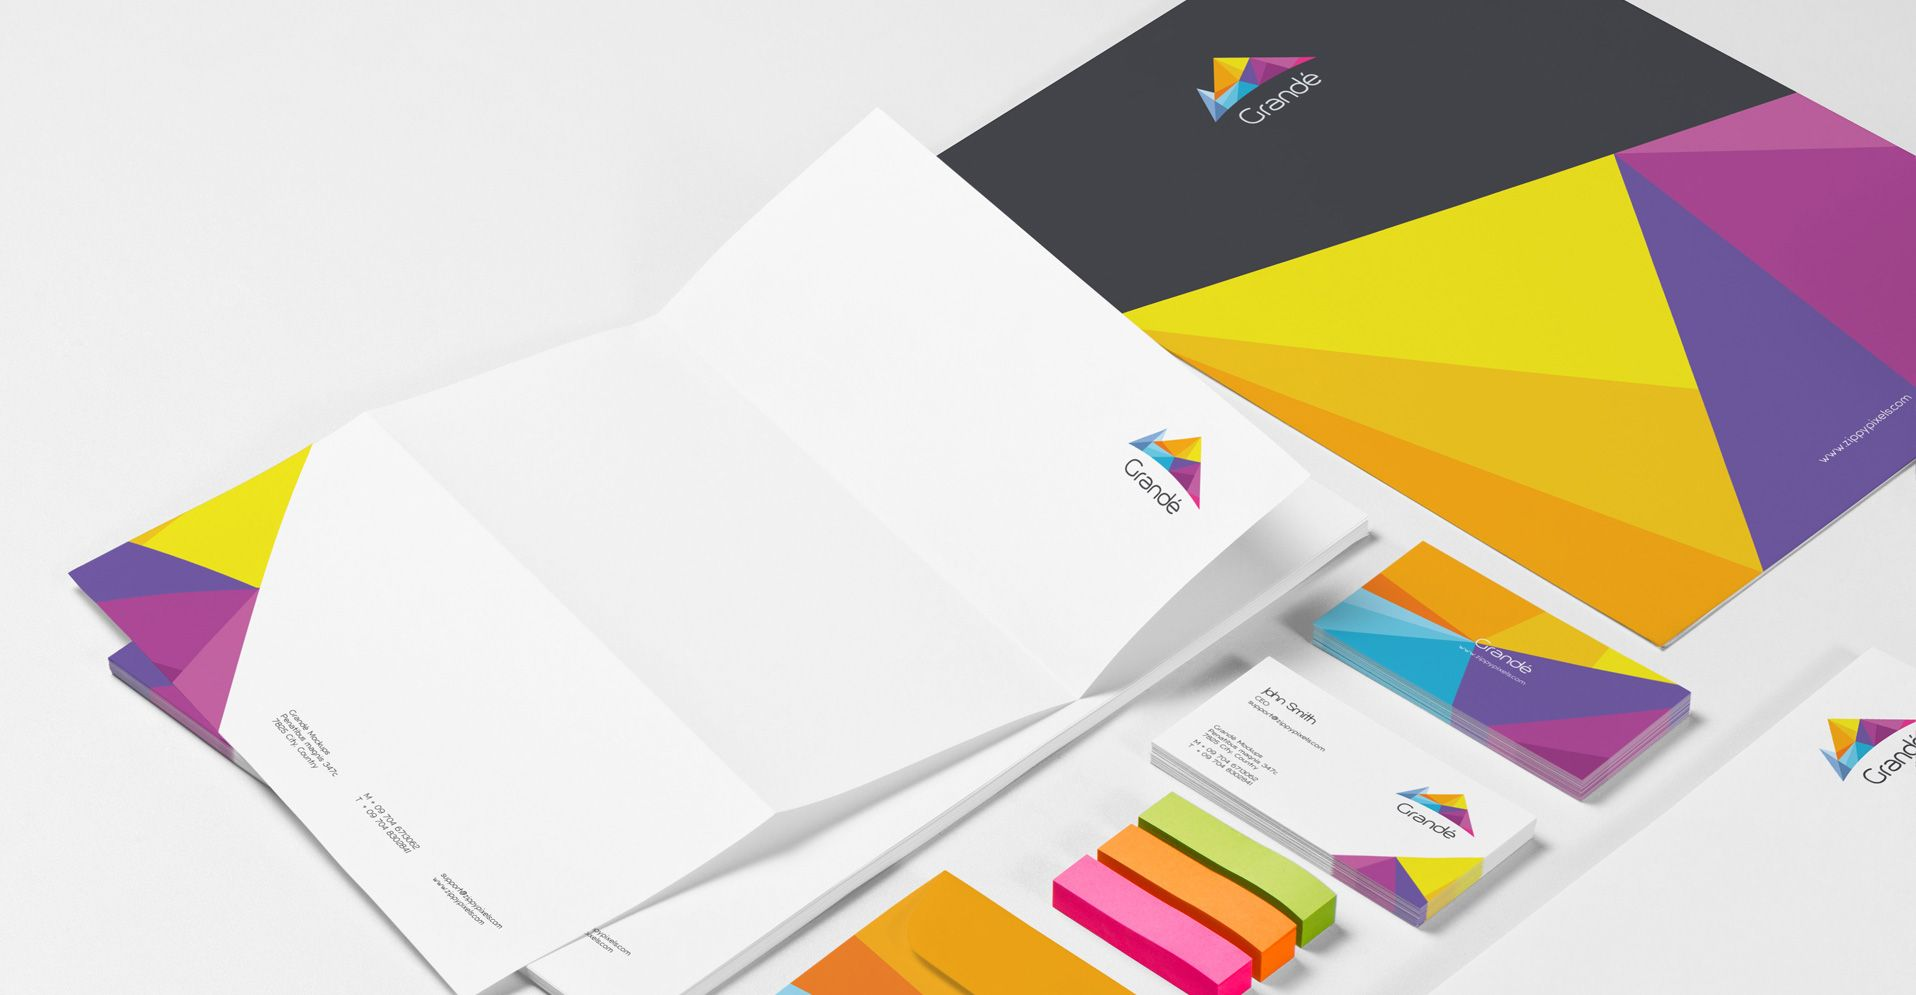 Photorealistic brand identity psd mockup collection pinterest photorealistic stationery branding psd mockups a4 letterhead business card envelop file cover cd cover etc reheart Image collections